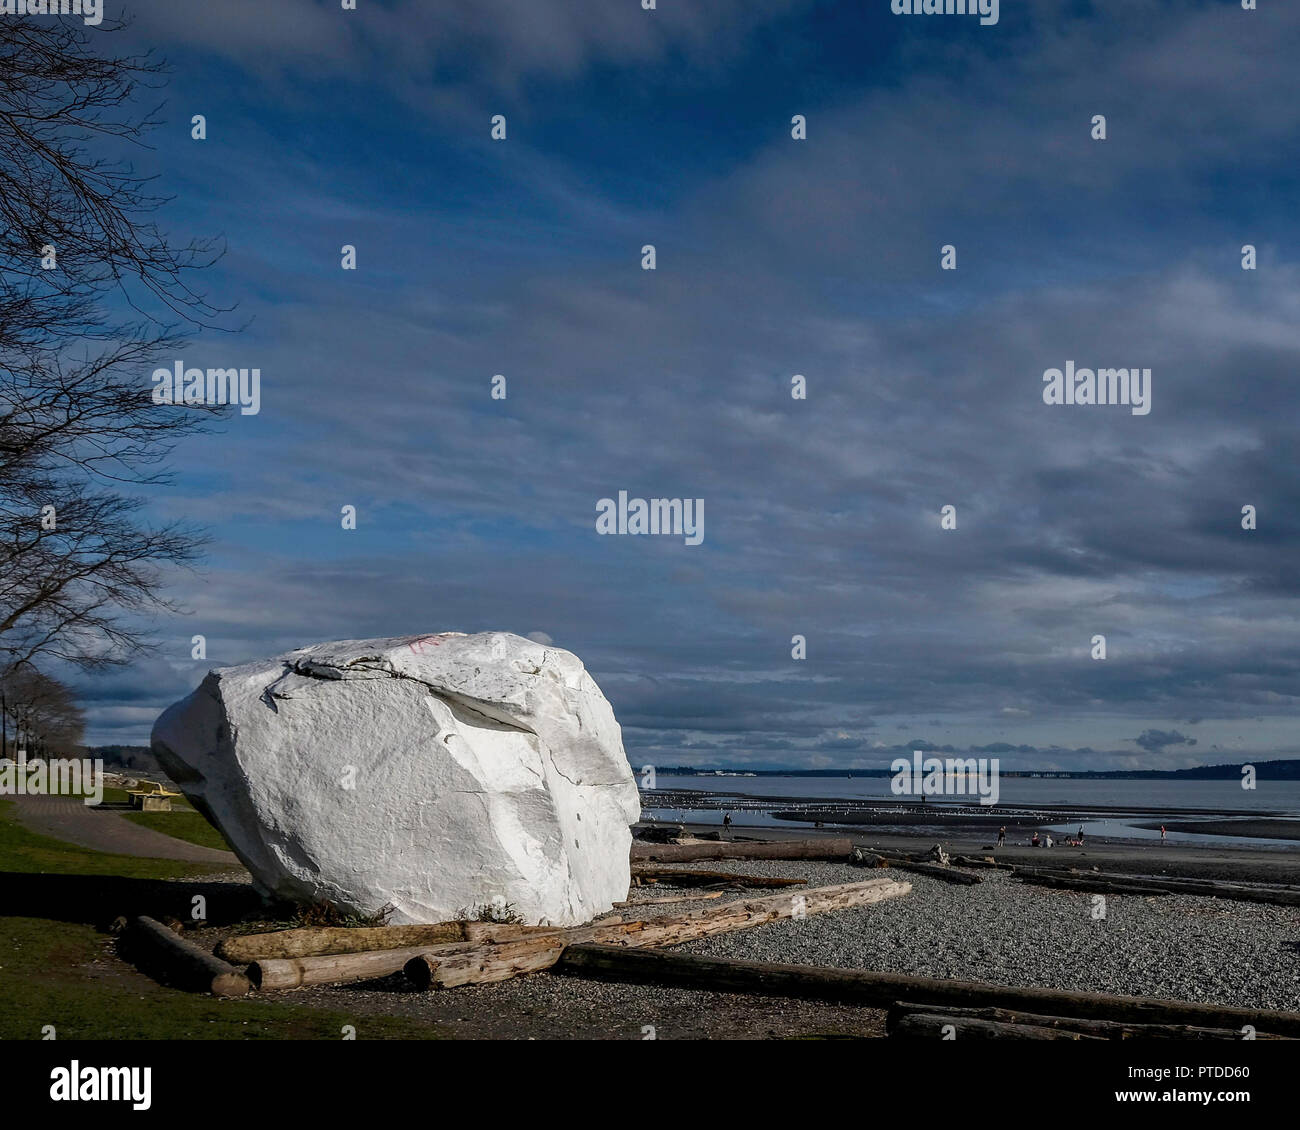 A large white rock, stoic and strong, on the beach of White Rock - Stock Image